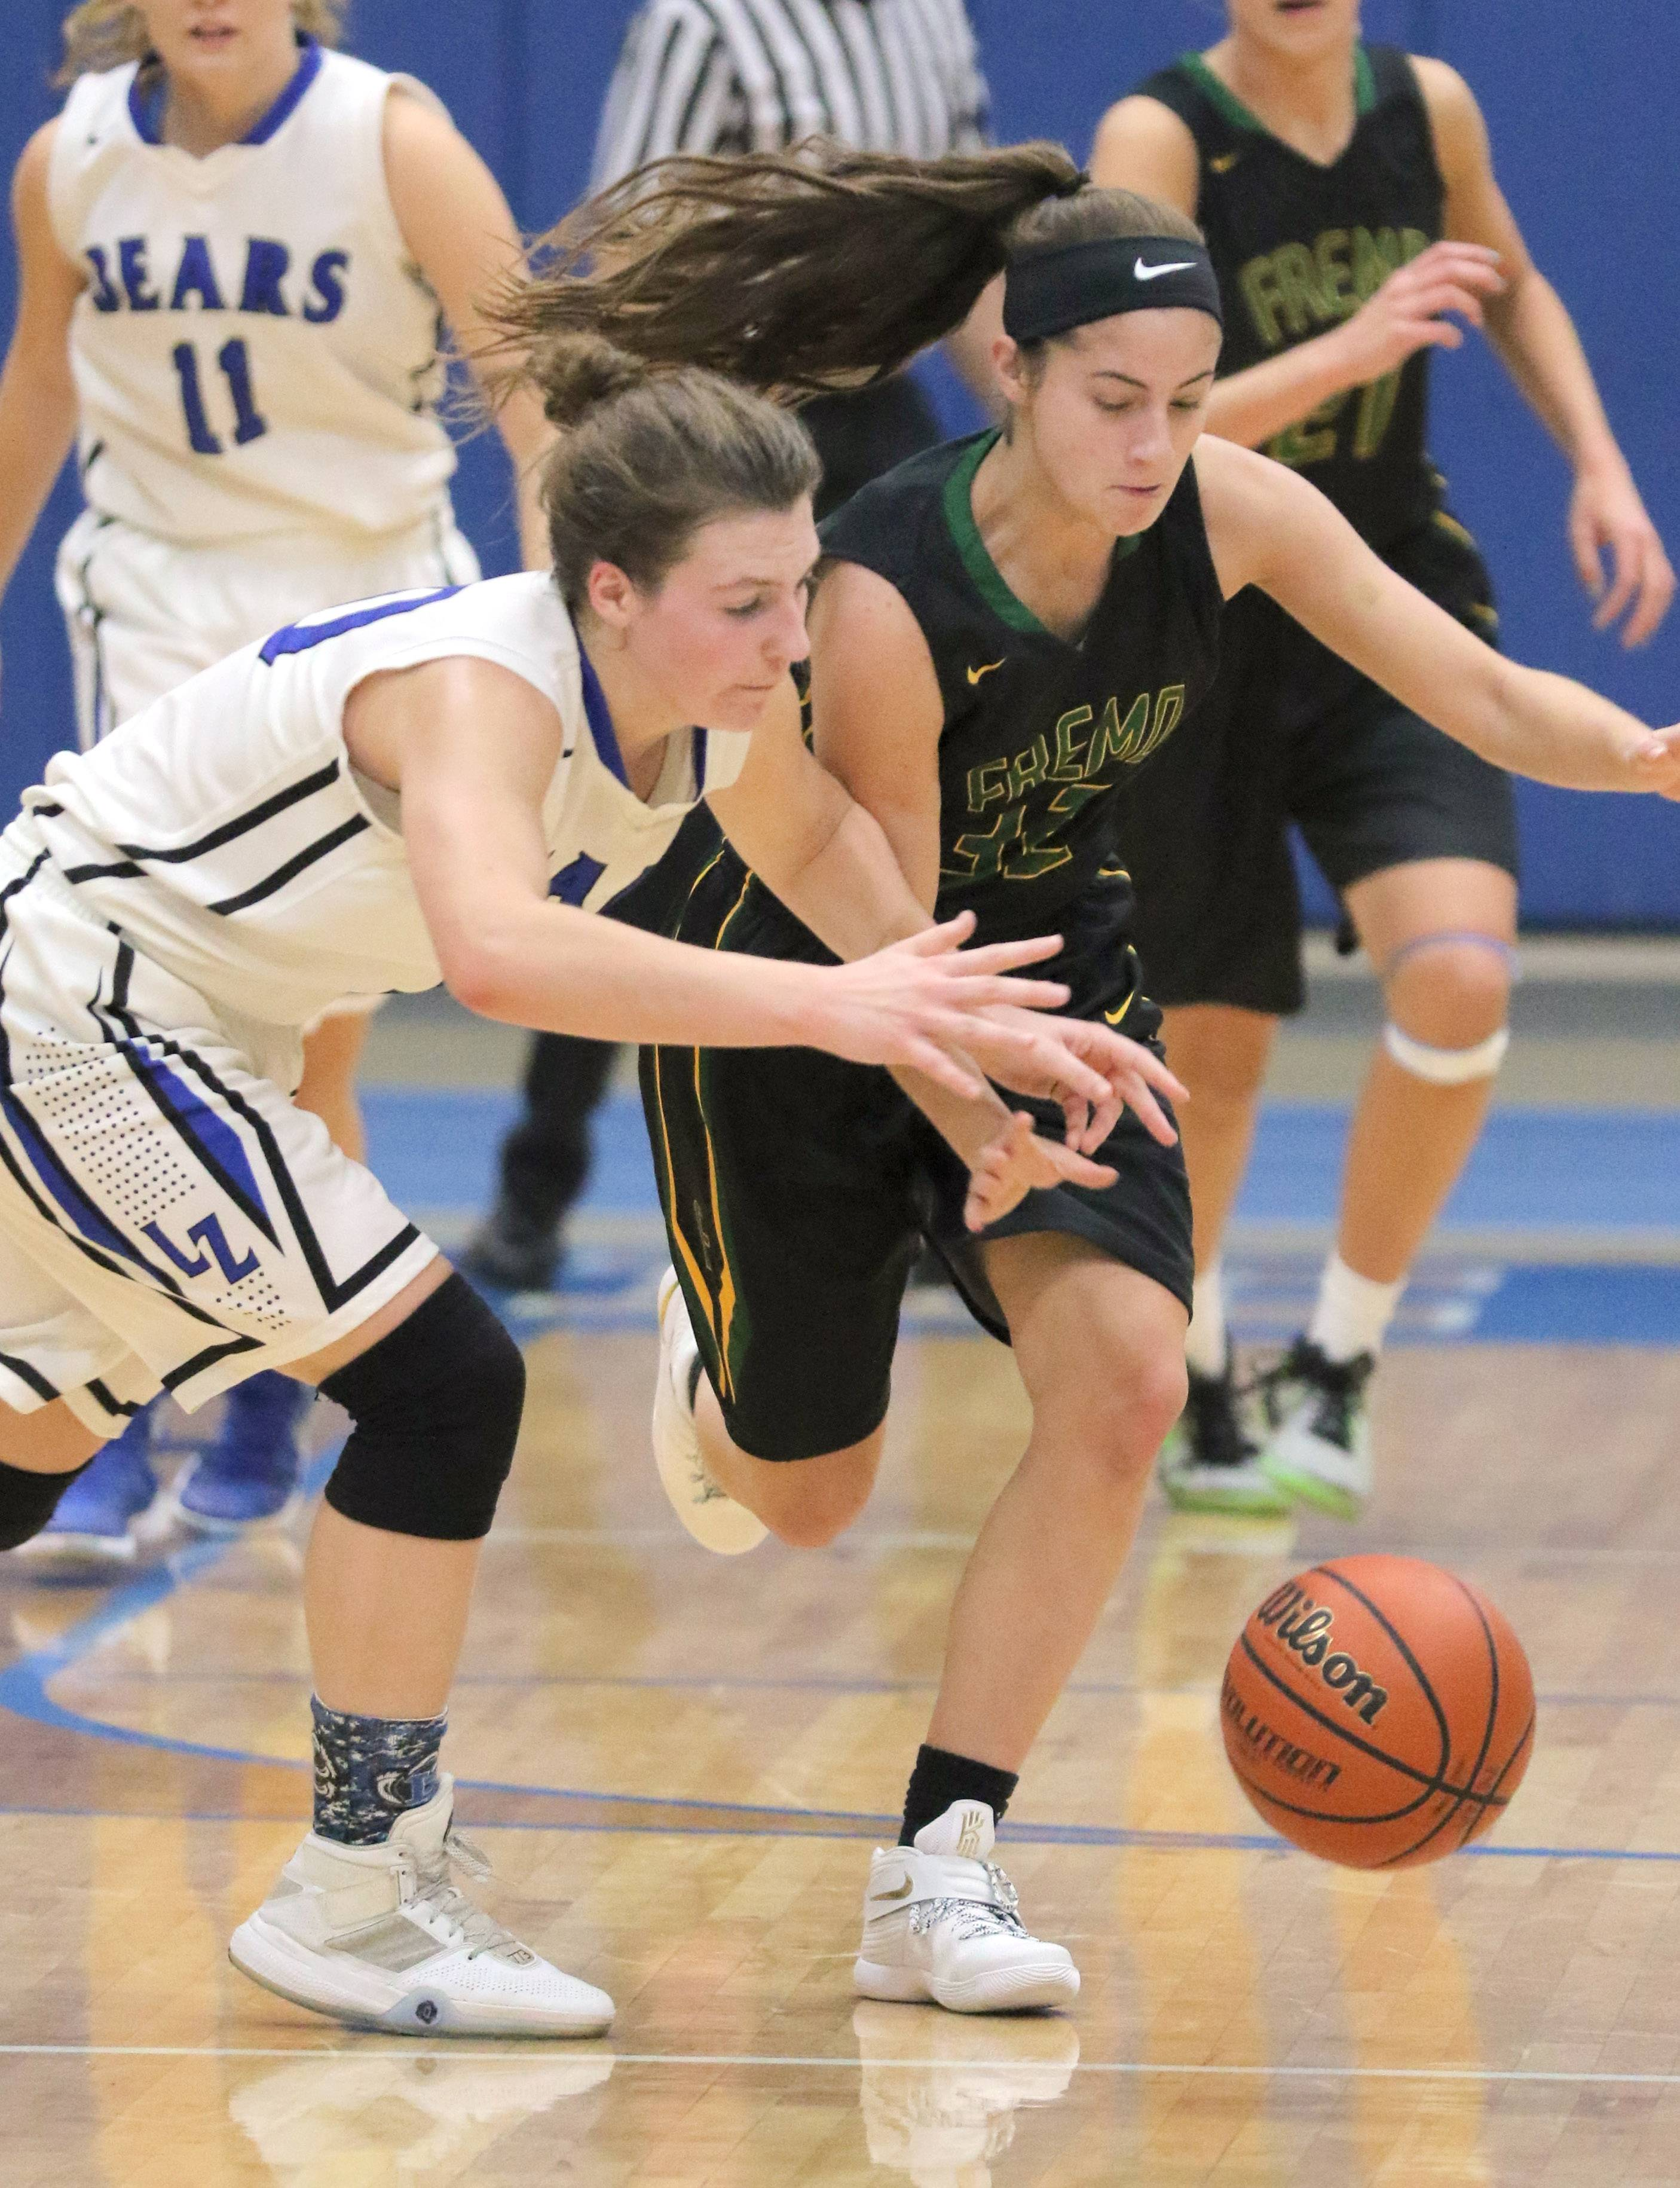 Lake Zurich's Grace Kinsey, left, and Fremd's Angie Zara battle for a loose ball Wednesday night at Lake Zurich.